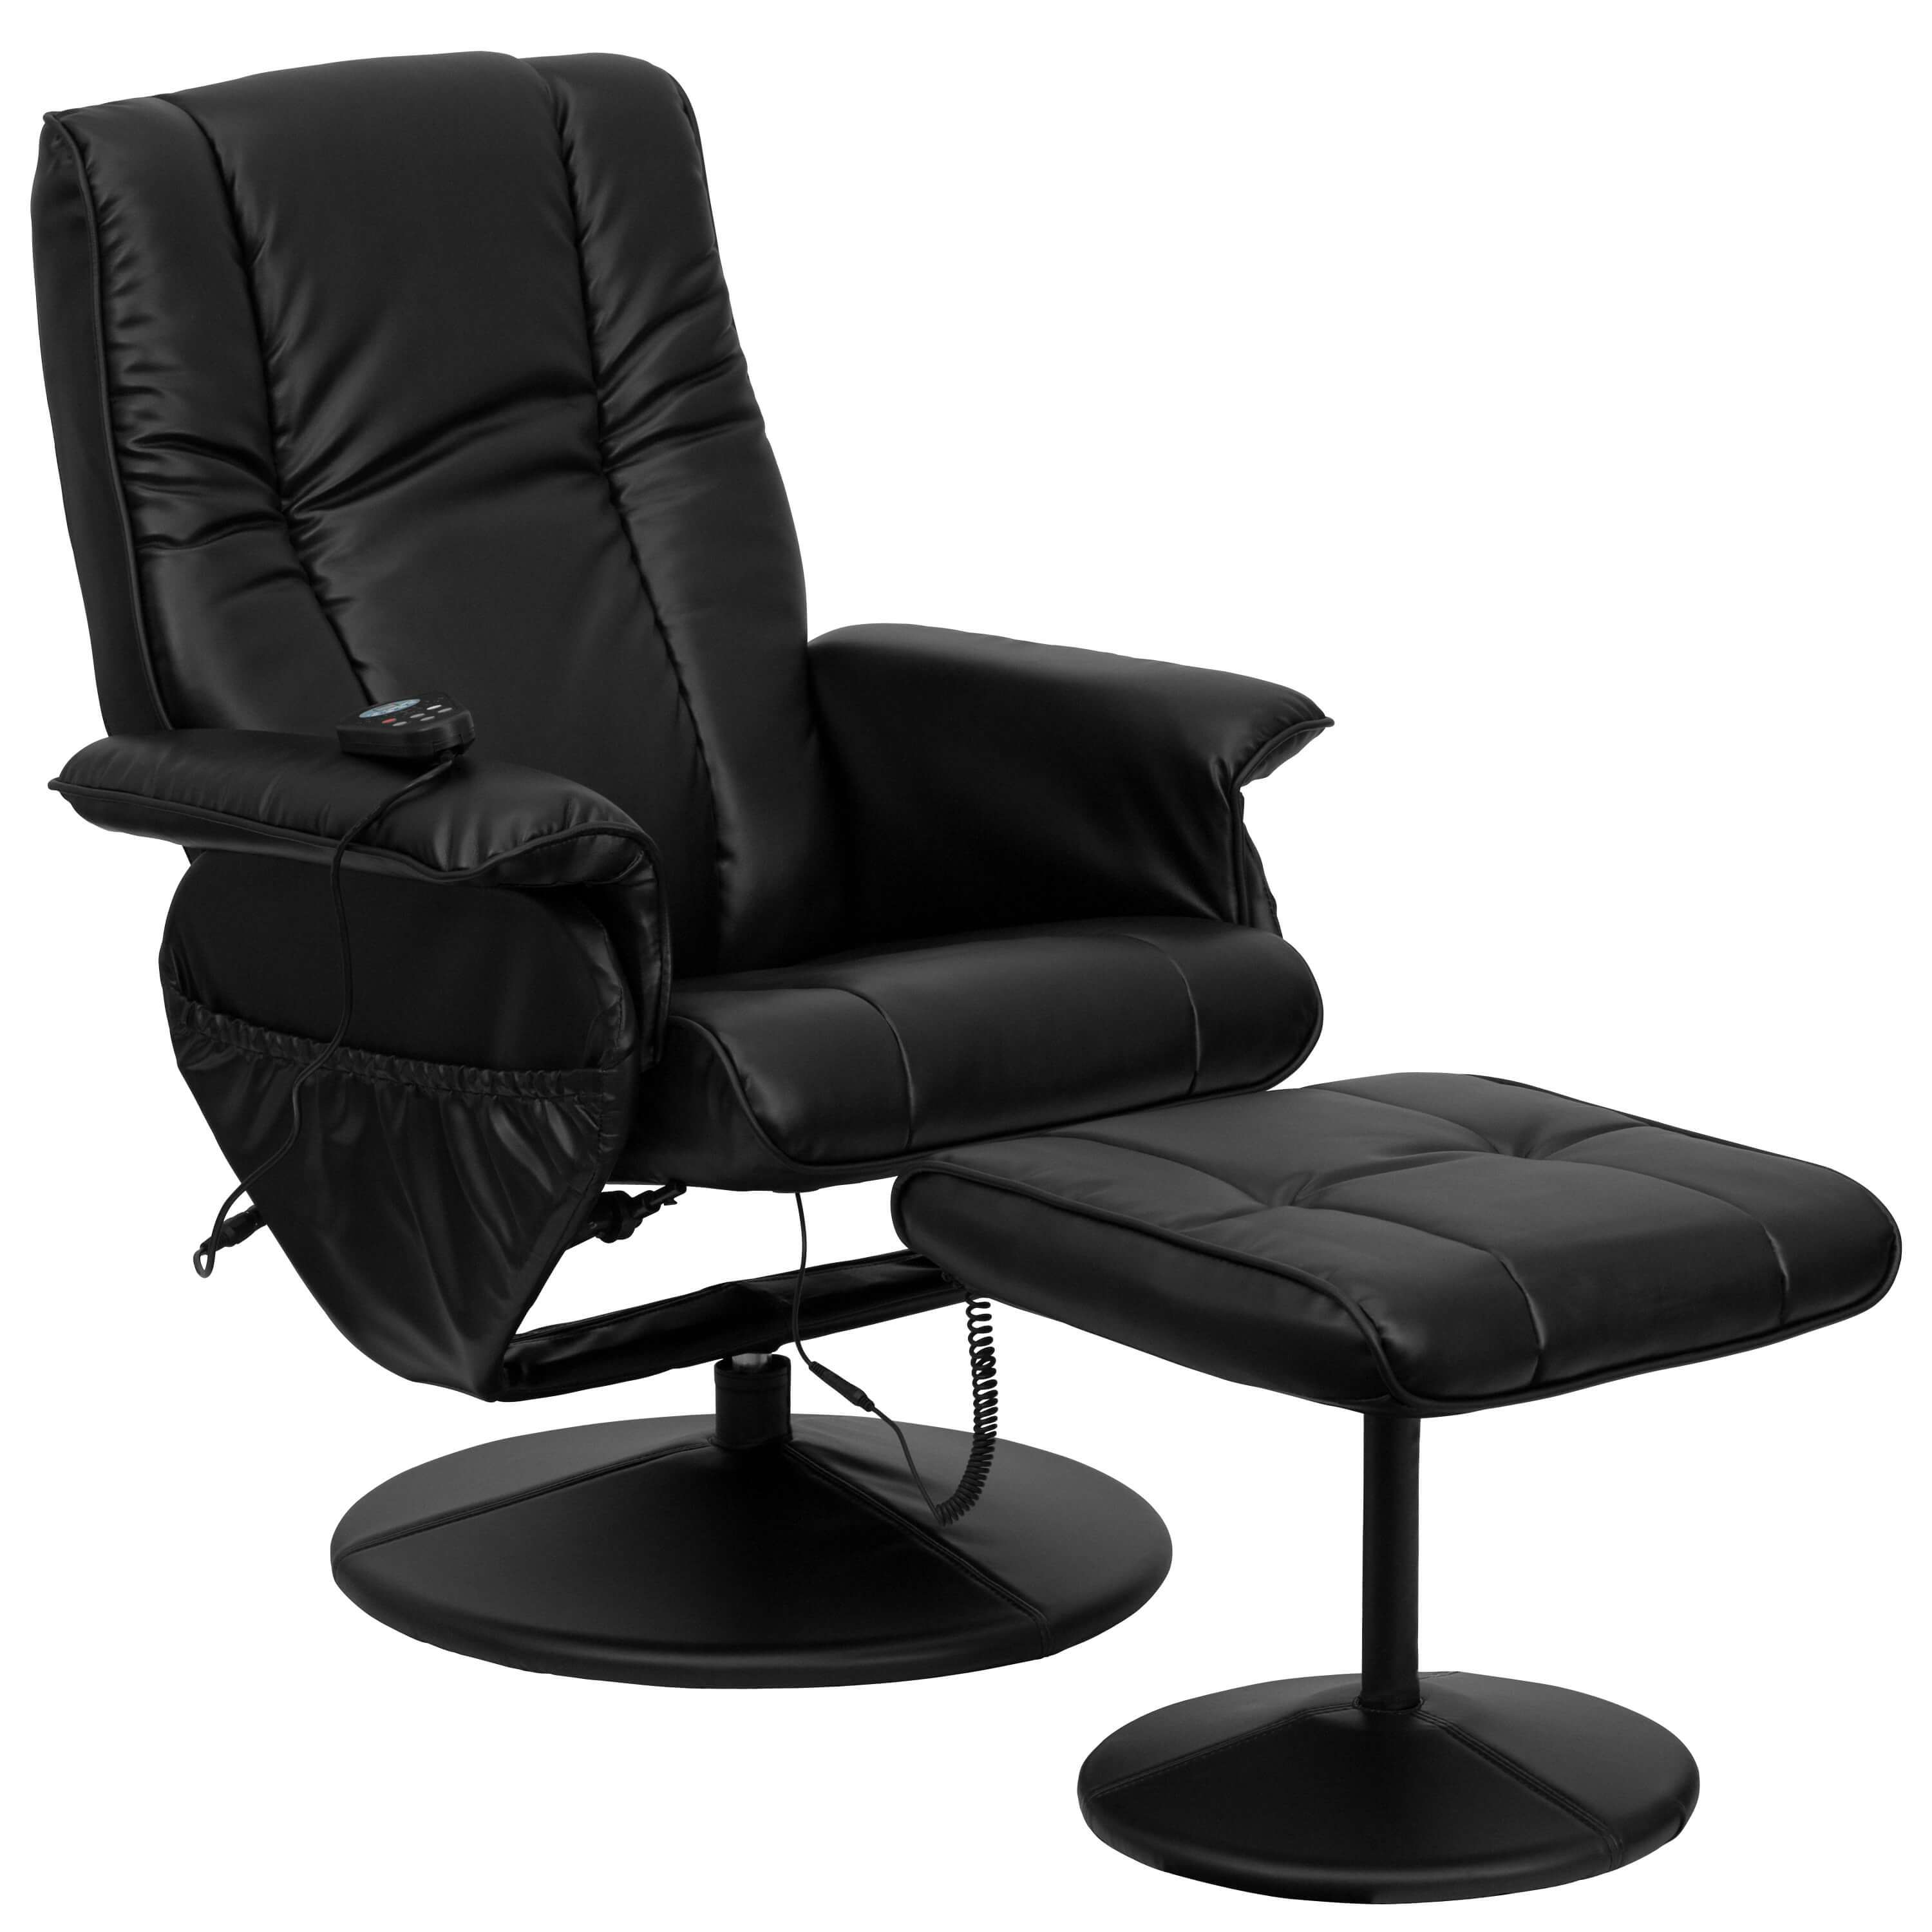 contemporary-recliner-recliner-massage-chair.jpg